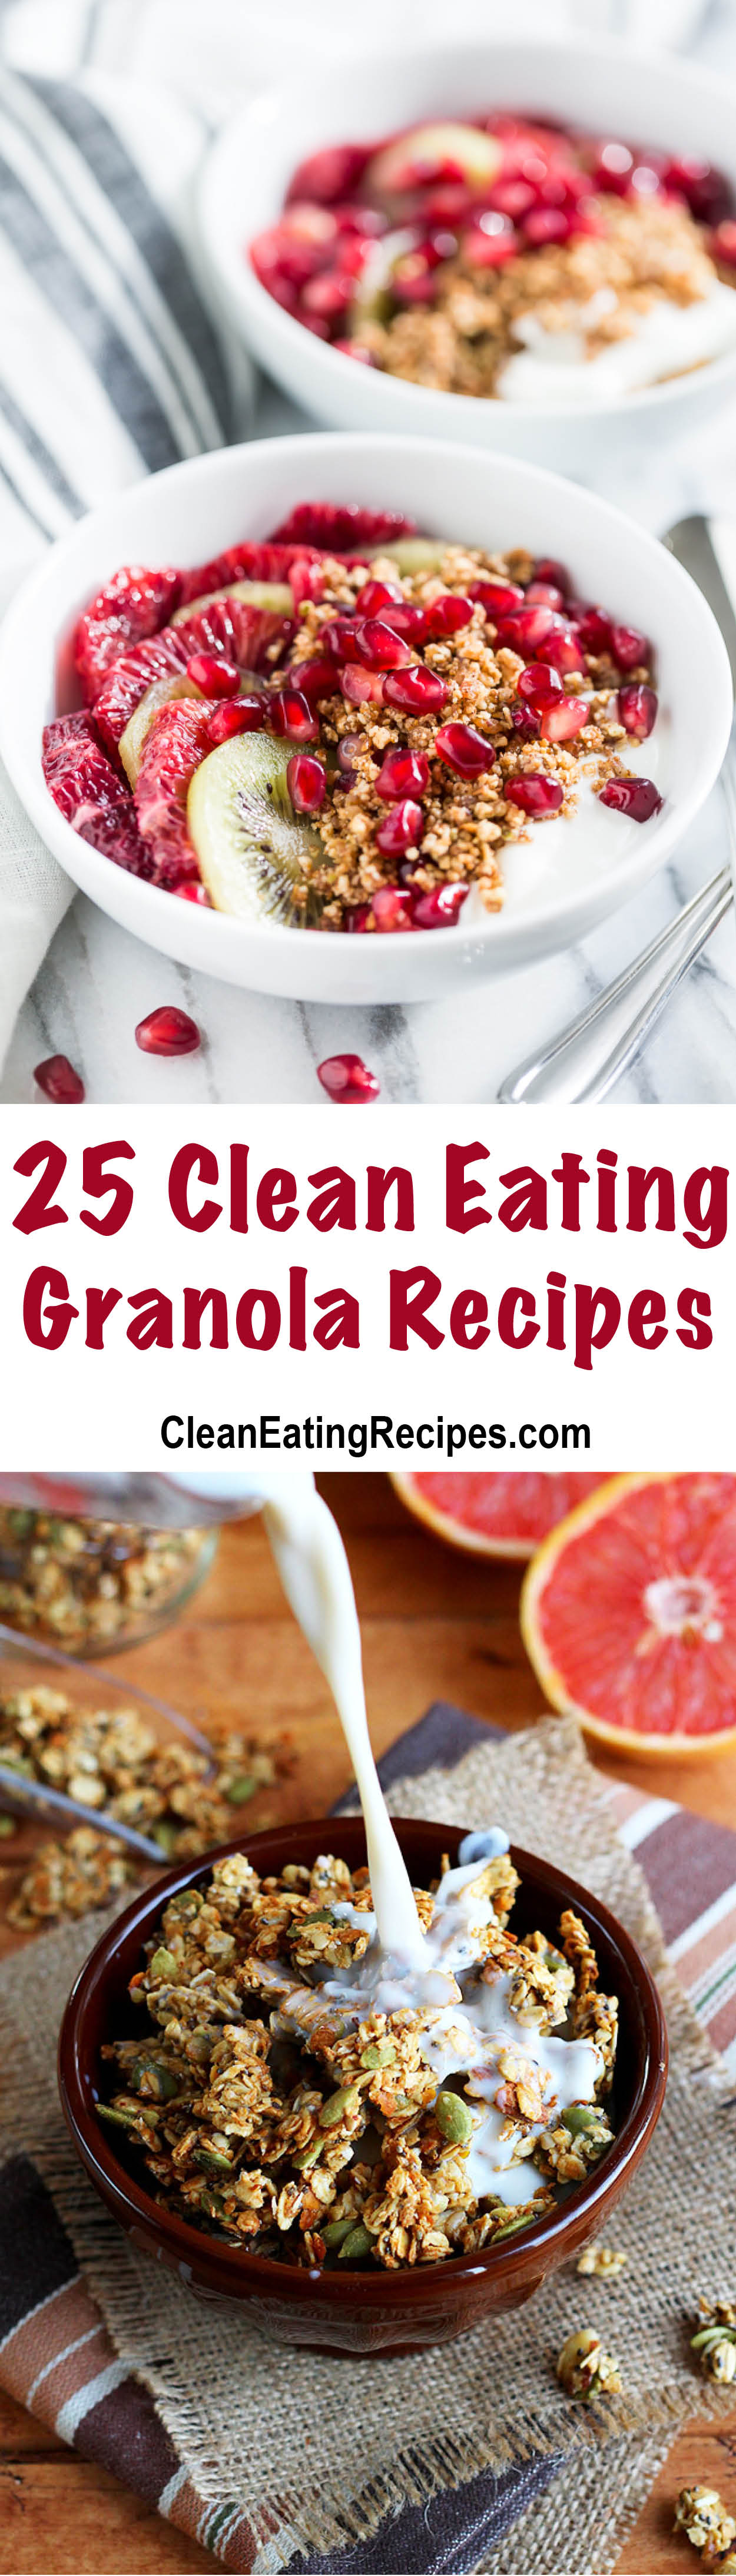 I love this list of Clean Eating granola recipes because they all look good and there is an image for every recipe, so I can see which ones look good to me.